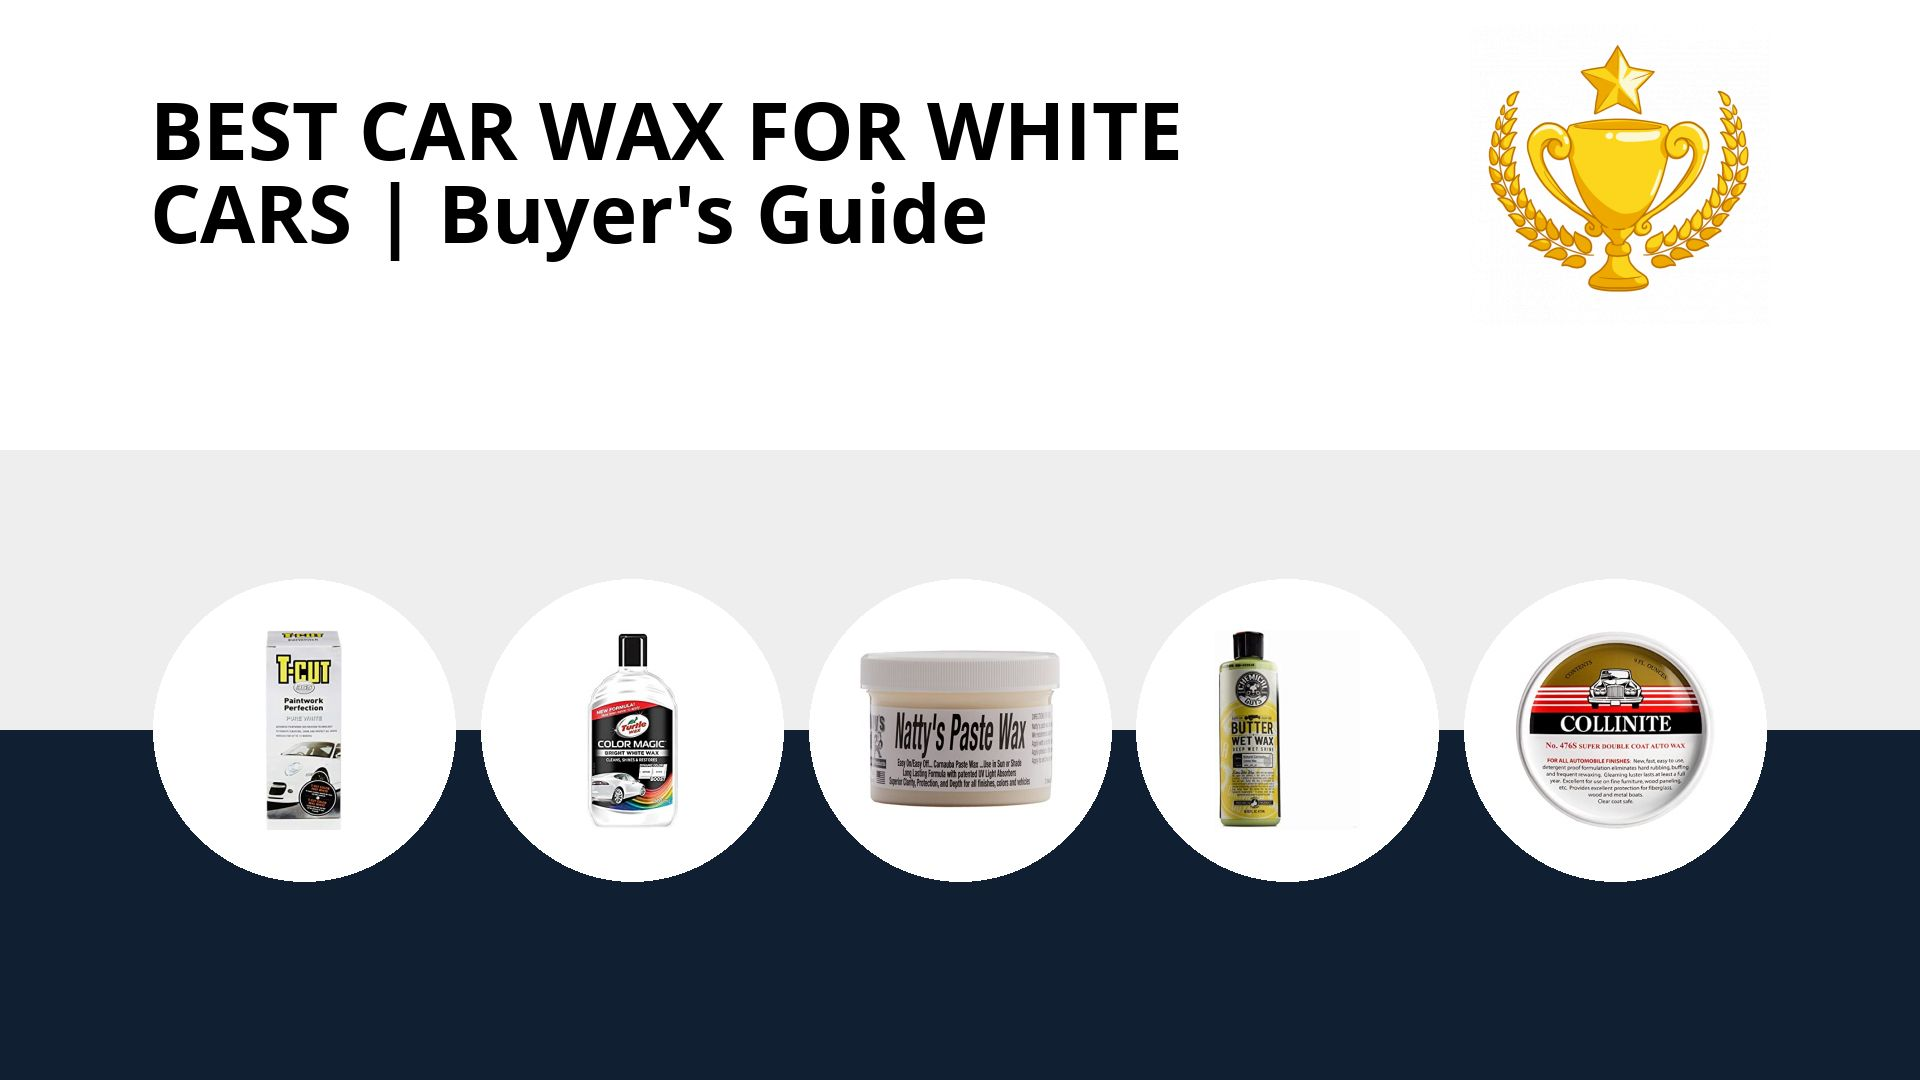 Best Car Wax For White Cars: image